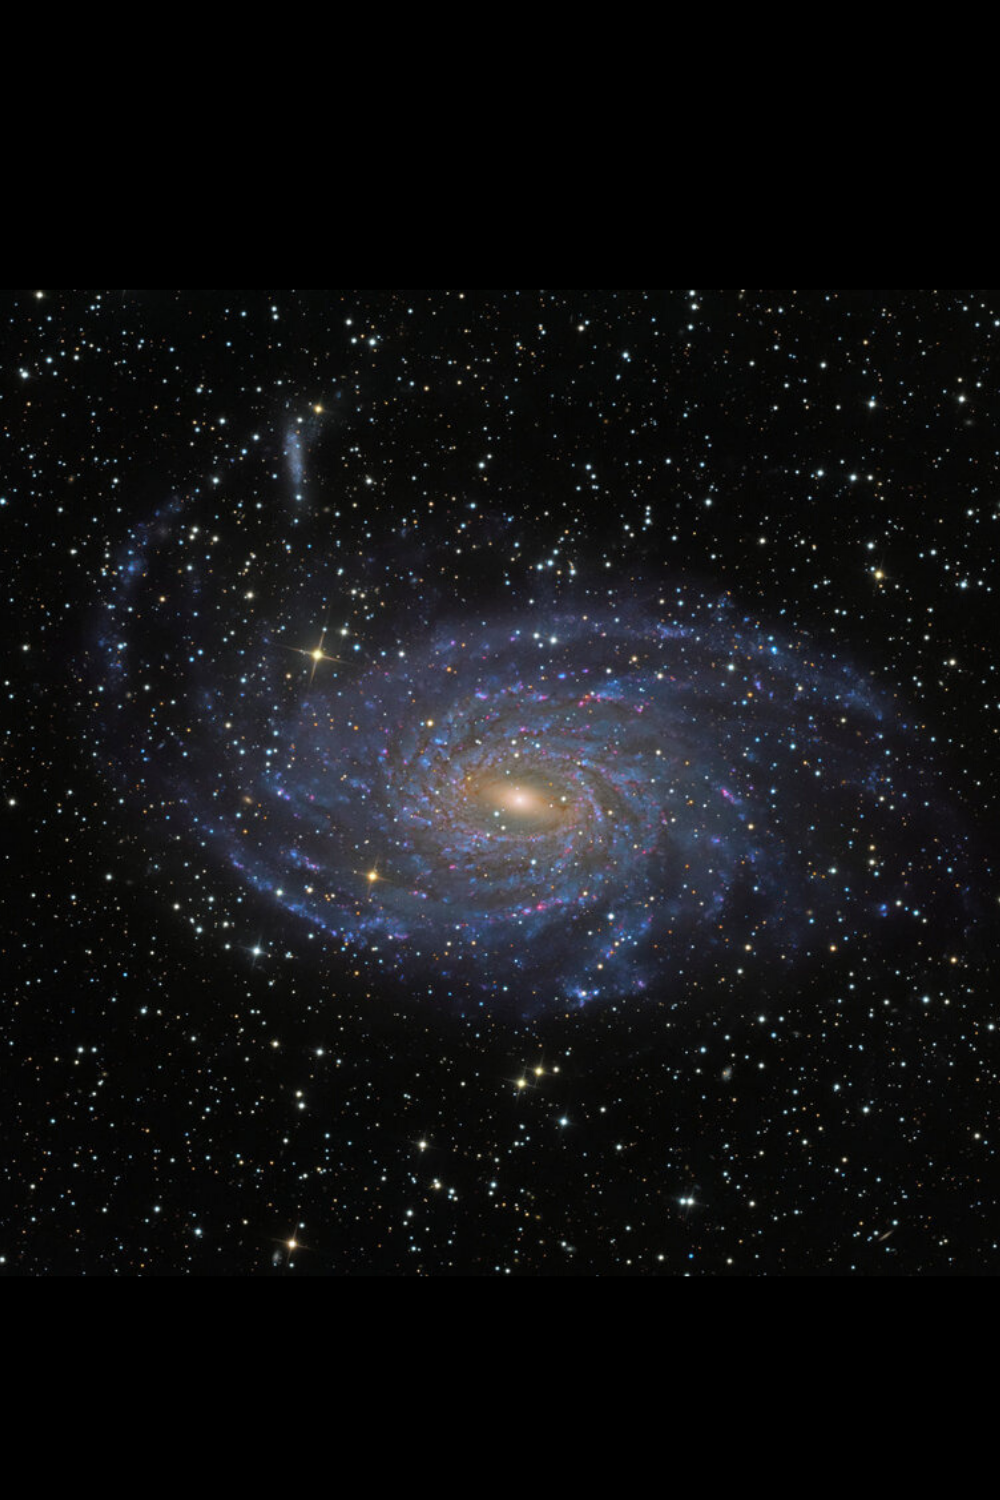 Ngc 6744 Galaxy Ngc Spiral Galaxy Galaxy Pictures